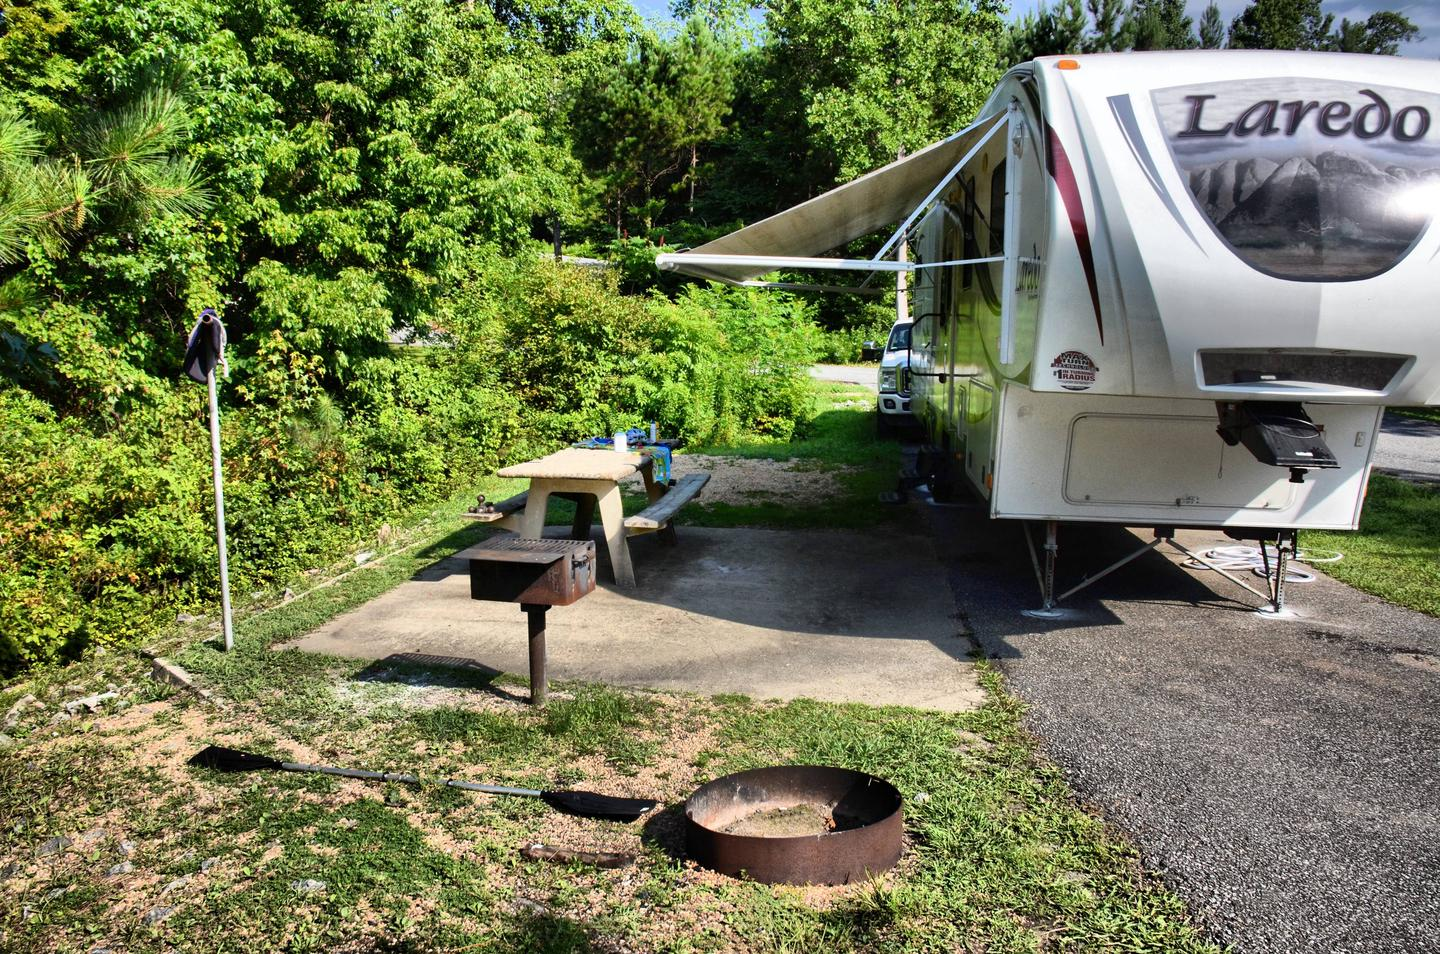 Awning-side clearance, campsite view.Payne Campground, campsite 36.